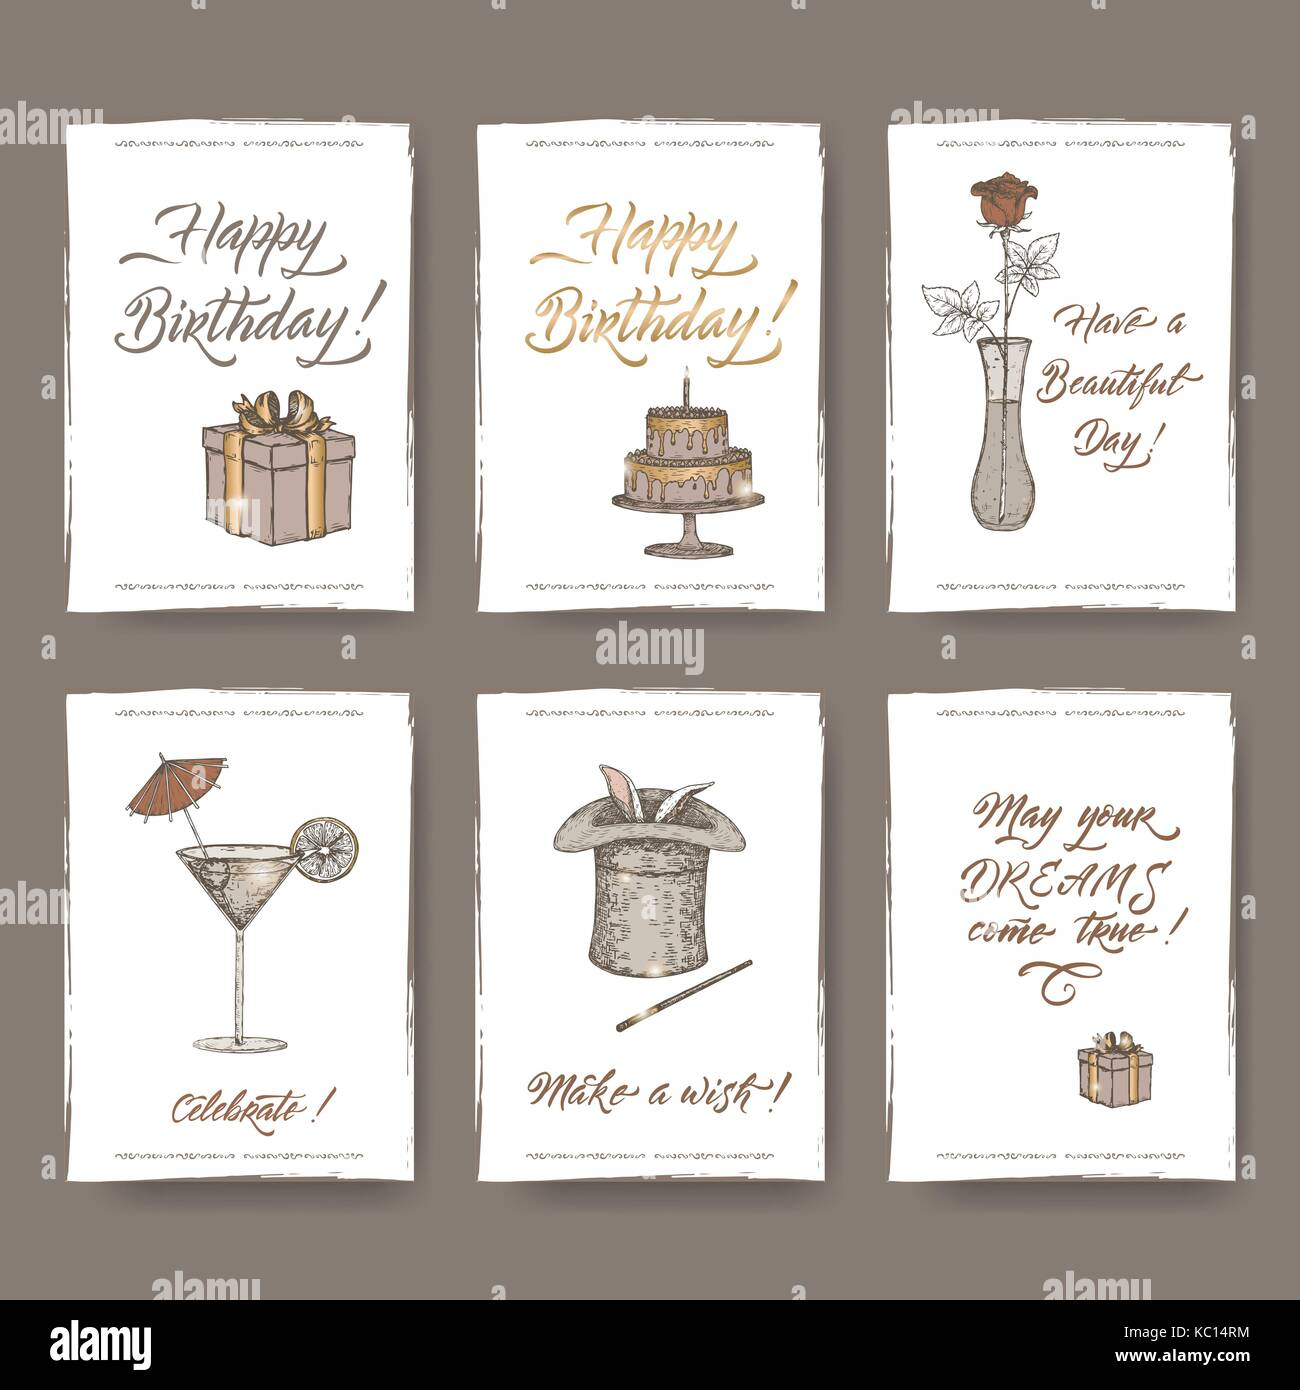 Set Of Six Romantic A4 Format Vintage Birthday Cards With Calligraphy,  Gift, Cake, Flower, Cocktail, Magic Hat Sketch  Birthday Cards Format